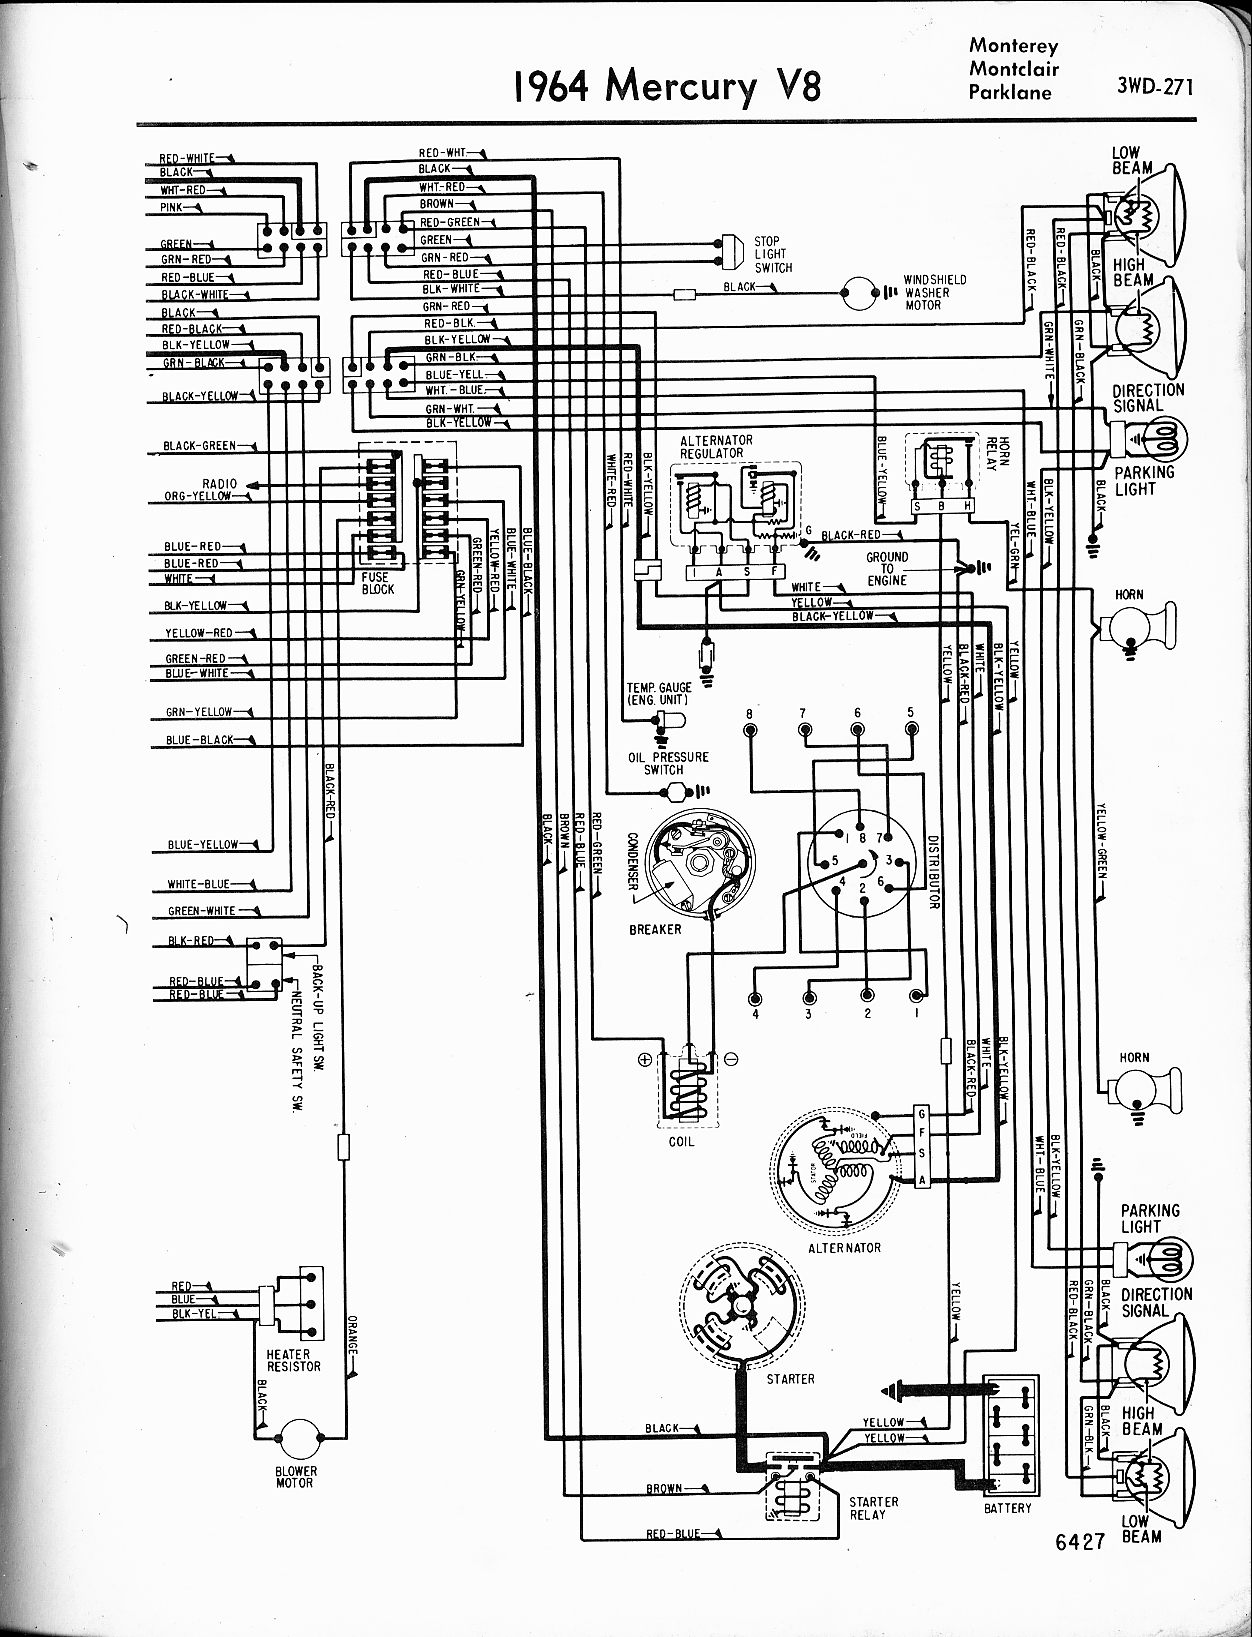 MWire5765 271 mercury wiring diagrams the old car manual project  at mifinder.co